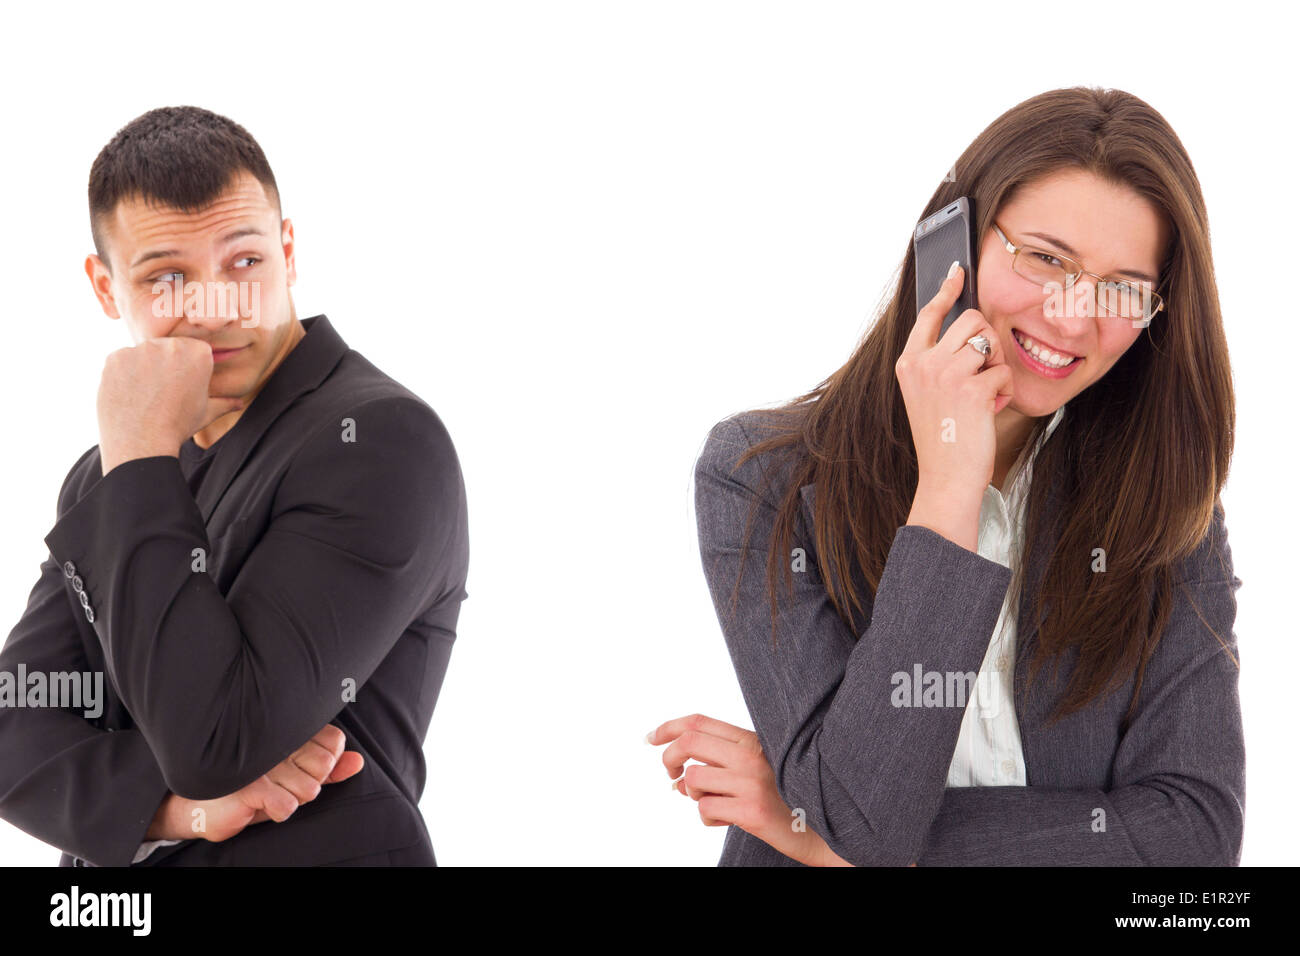 jealous man suspecting his woman is unfaithful and having secrets, couple with problems - Stock Image